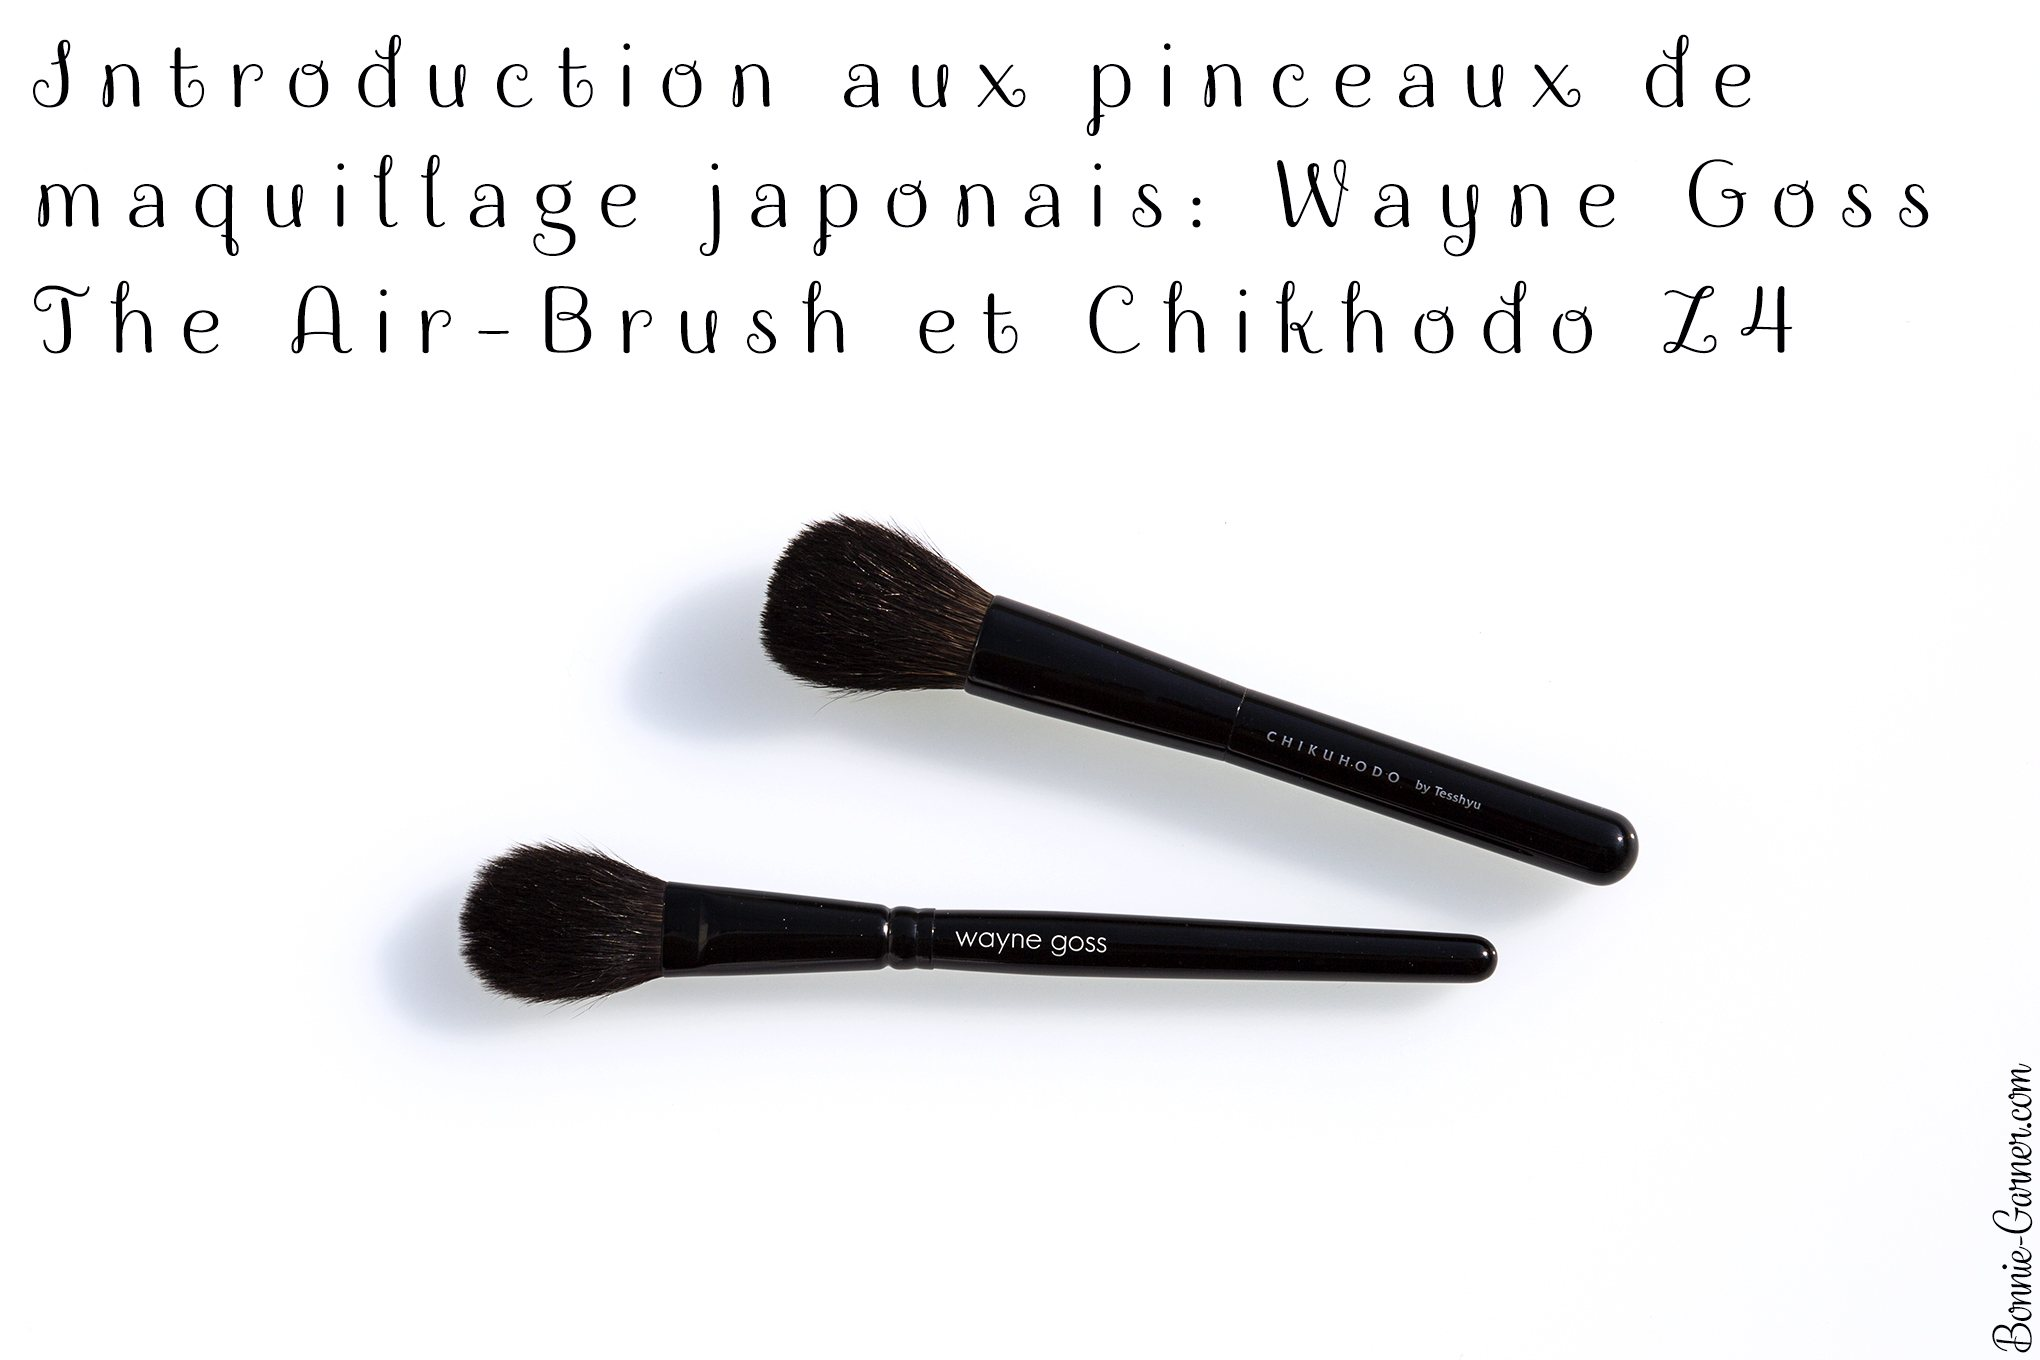 Introduction aux pinceaux de maquillage japonais: Wayne Goss The Air-Brush et Chikuhodo Z4